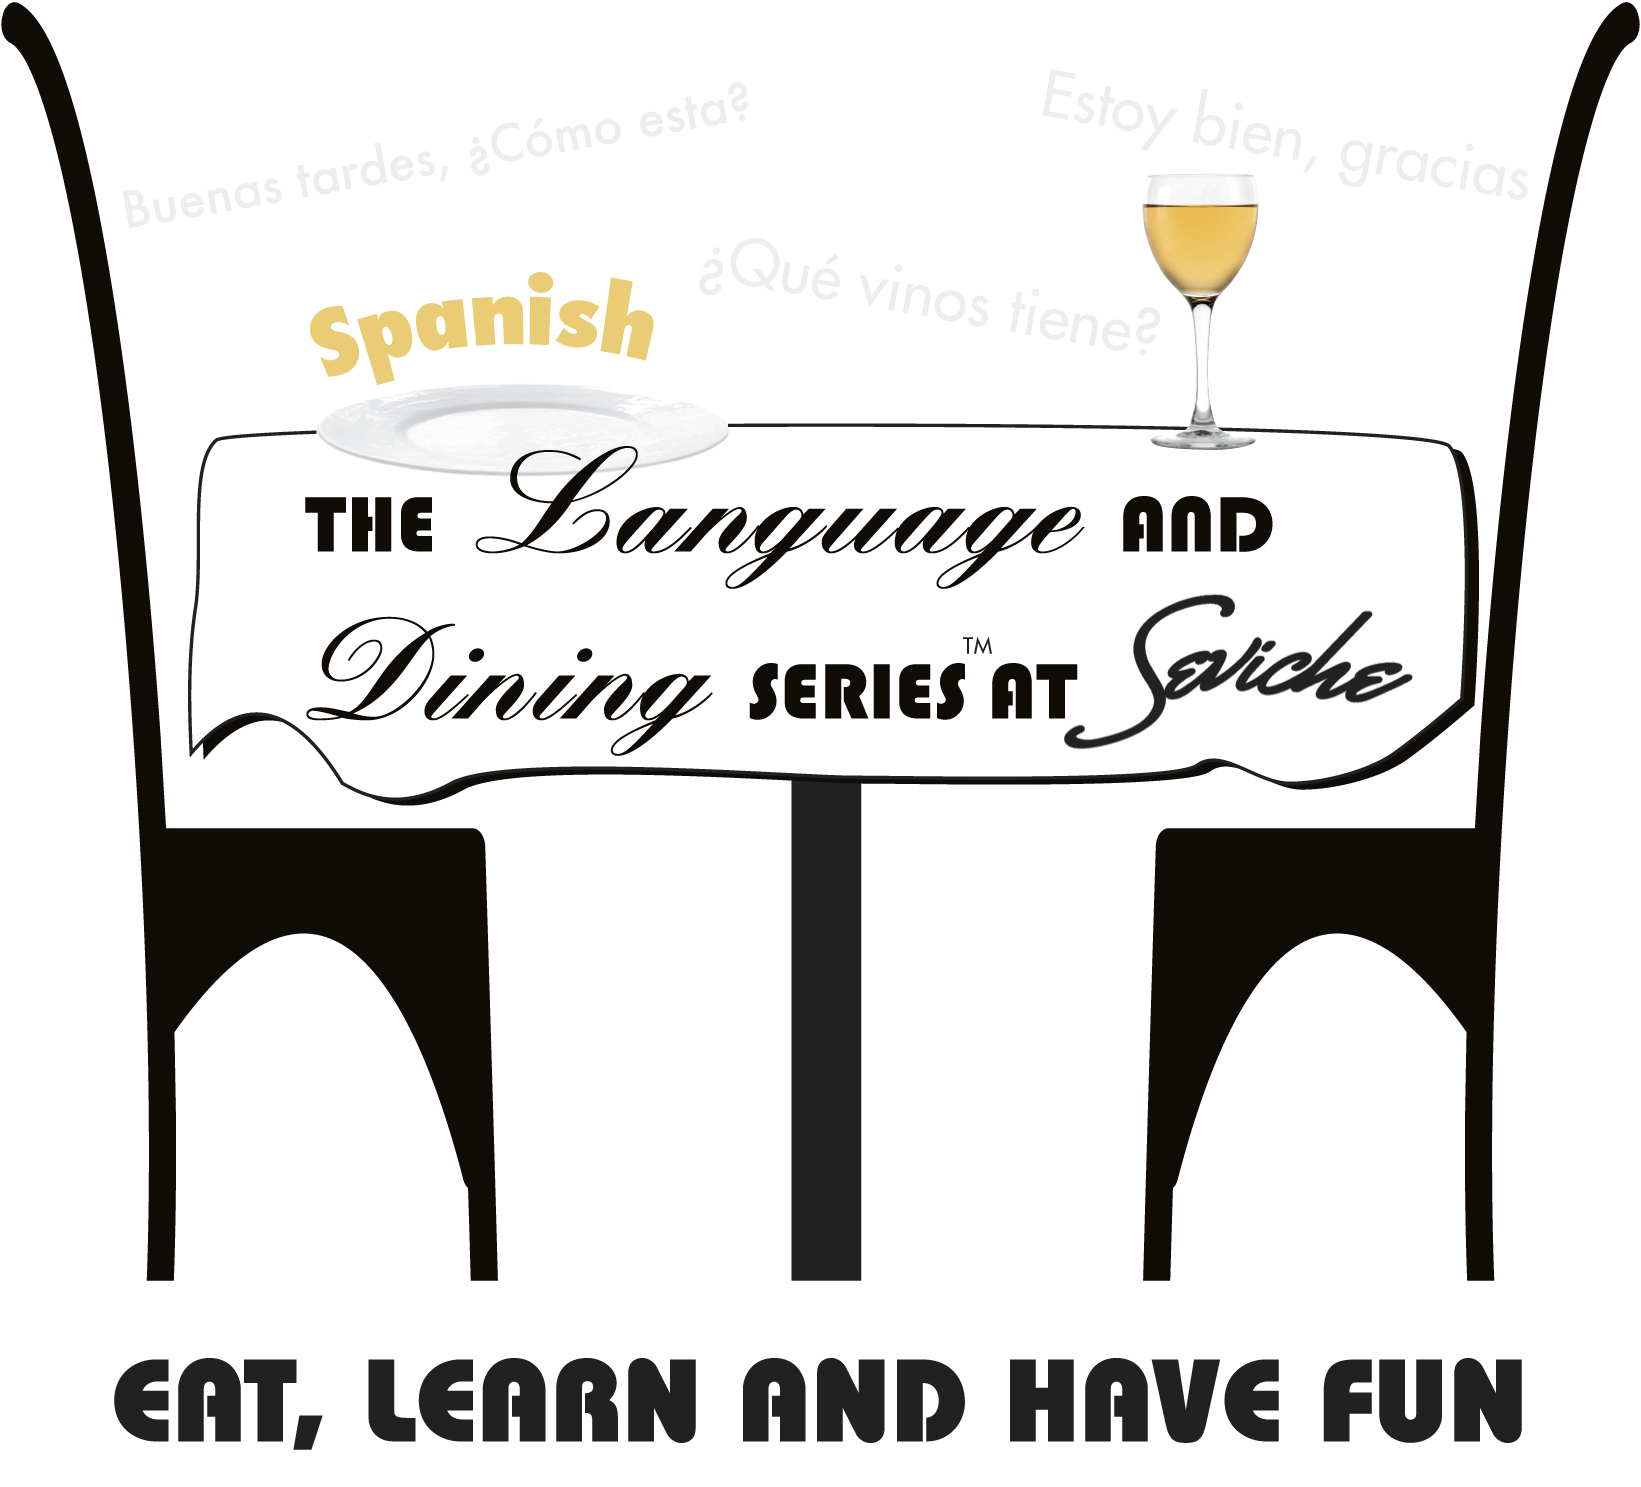 Spanish Language And Dining Series At Seviche Scheduled